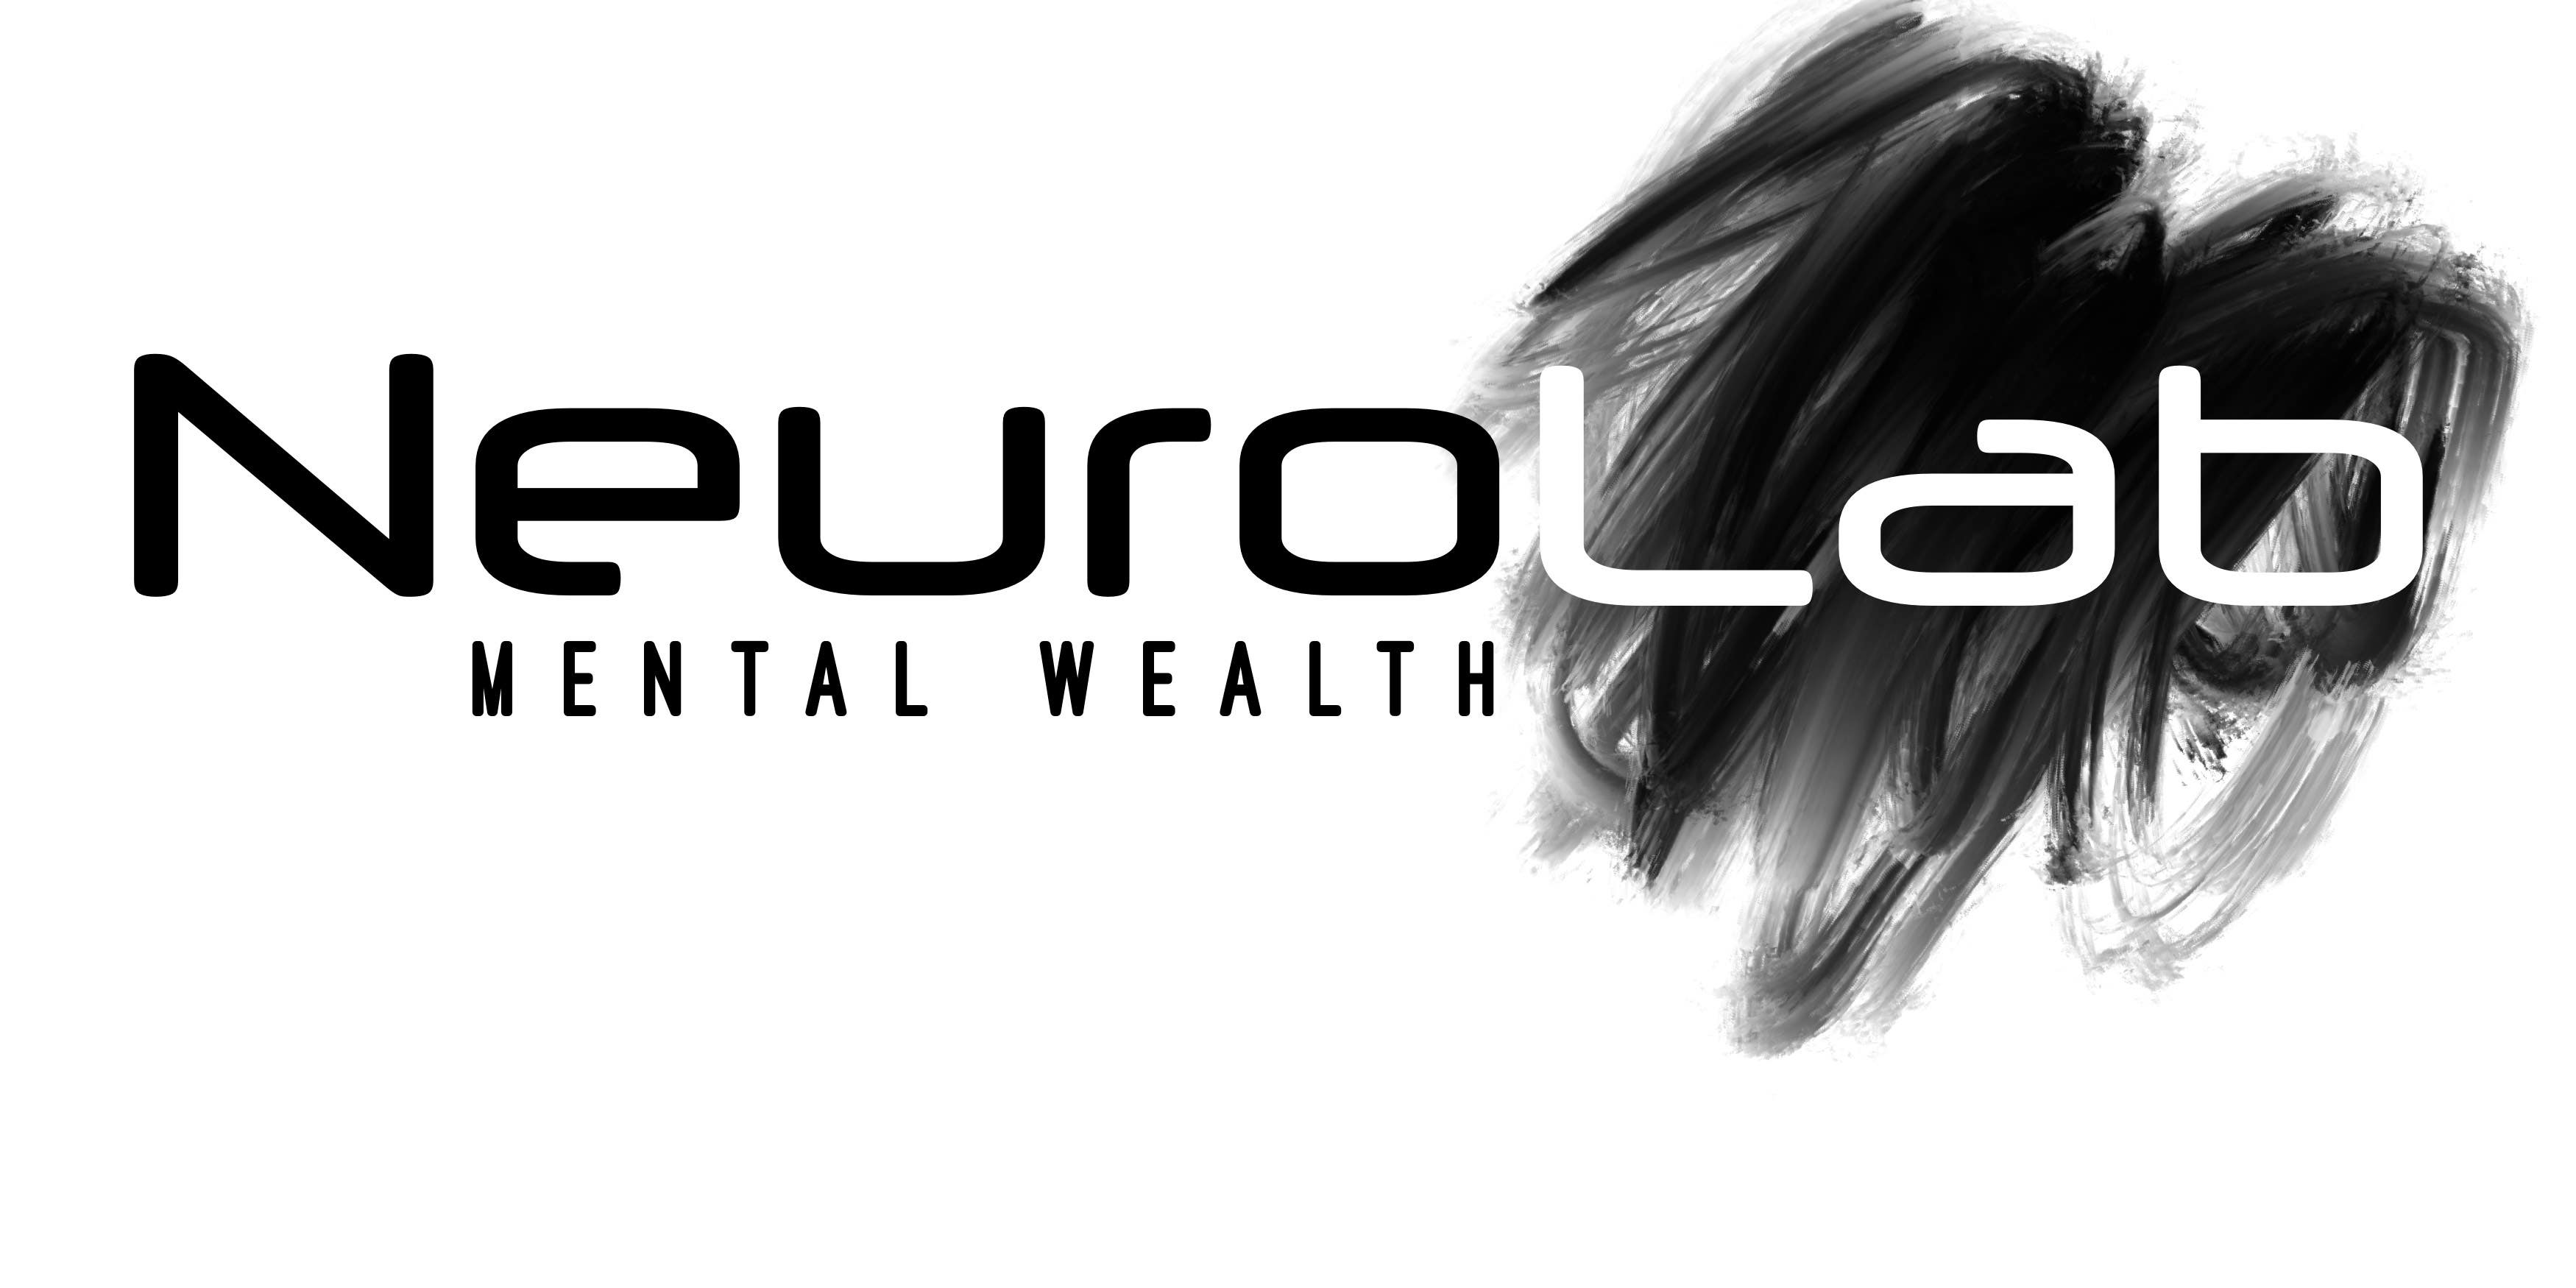 Black and white logo with black swish. Sub title under NeuroLab is Mental Wealth